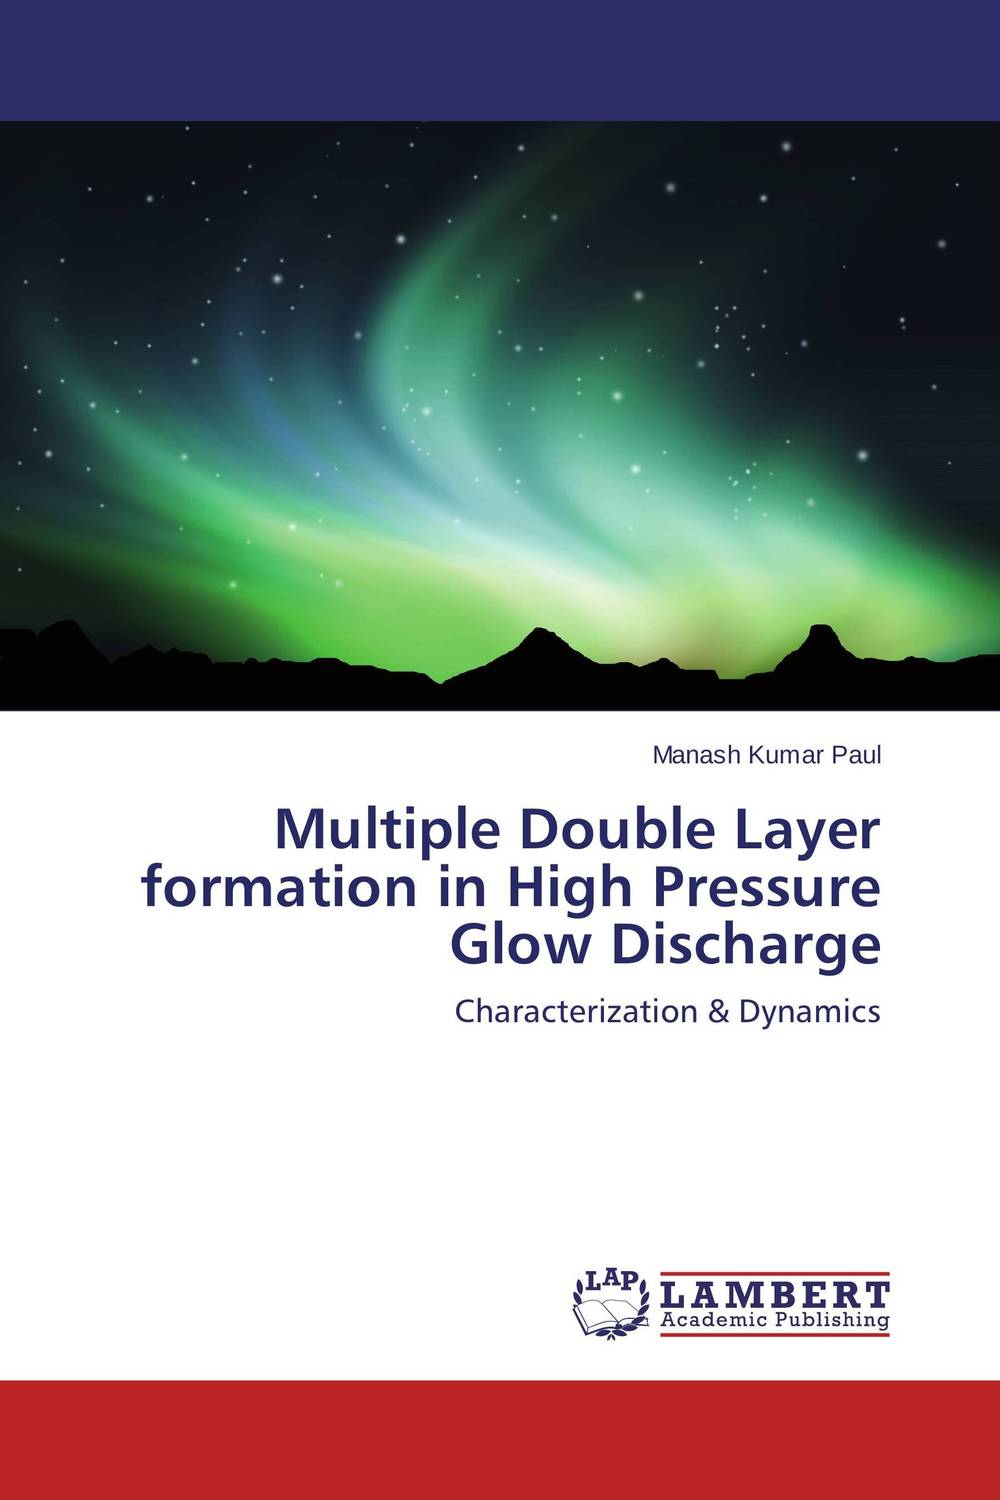 Multiple Double Layer formation in High Pressure Glow Discharge high pressure flexible hose is designed for installation in suction and discharge lines of ac and refrigeration systems